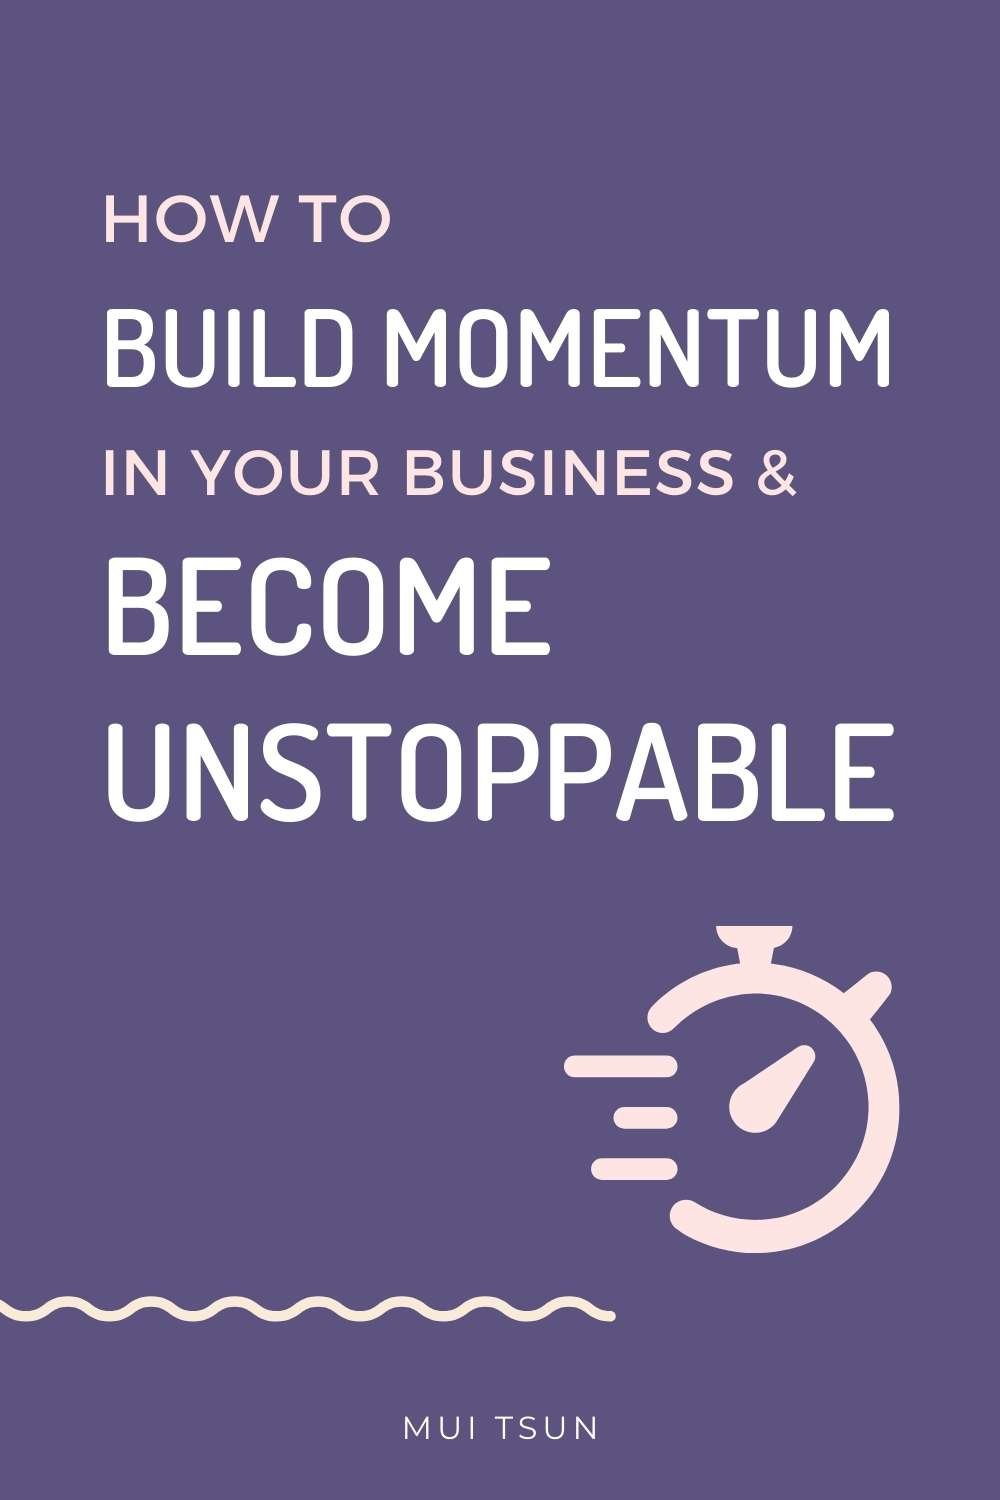 How to build momentum in your business and become unstoppable